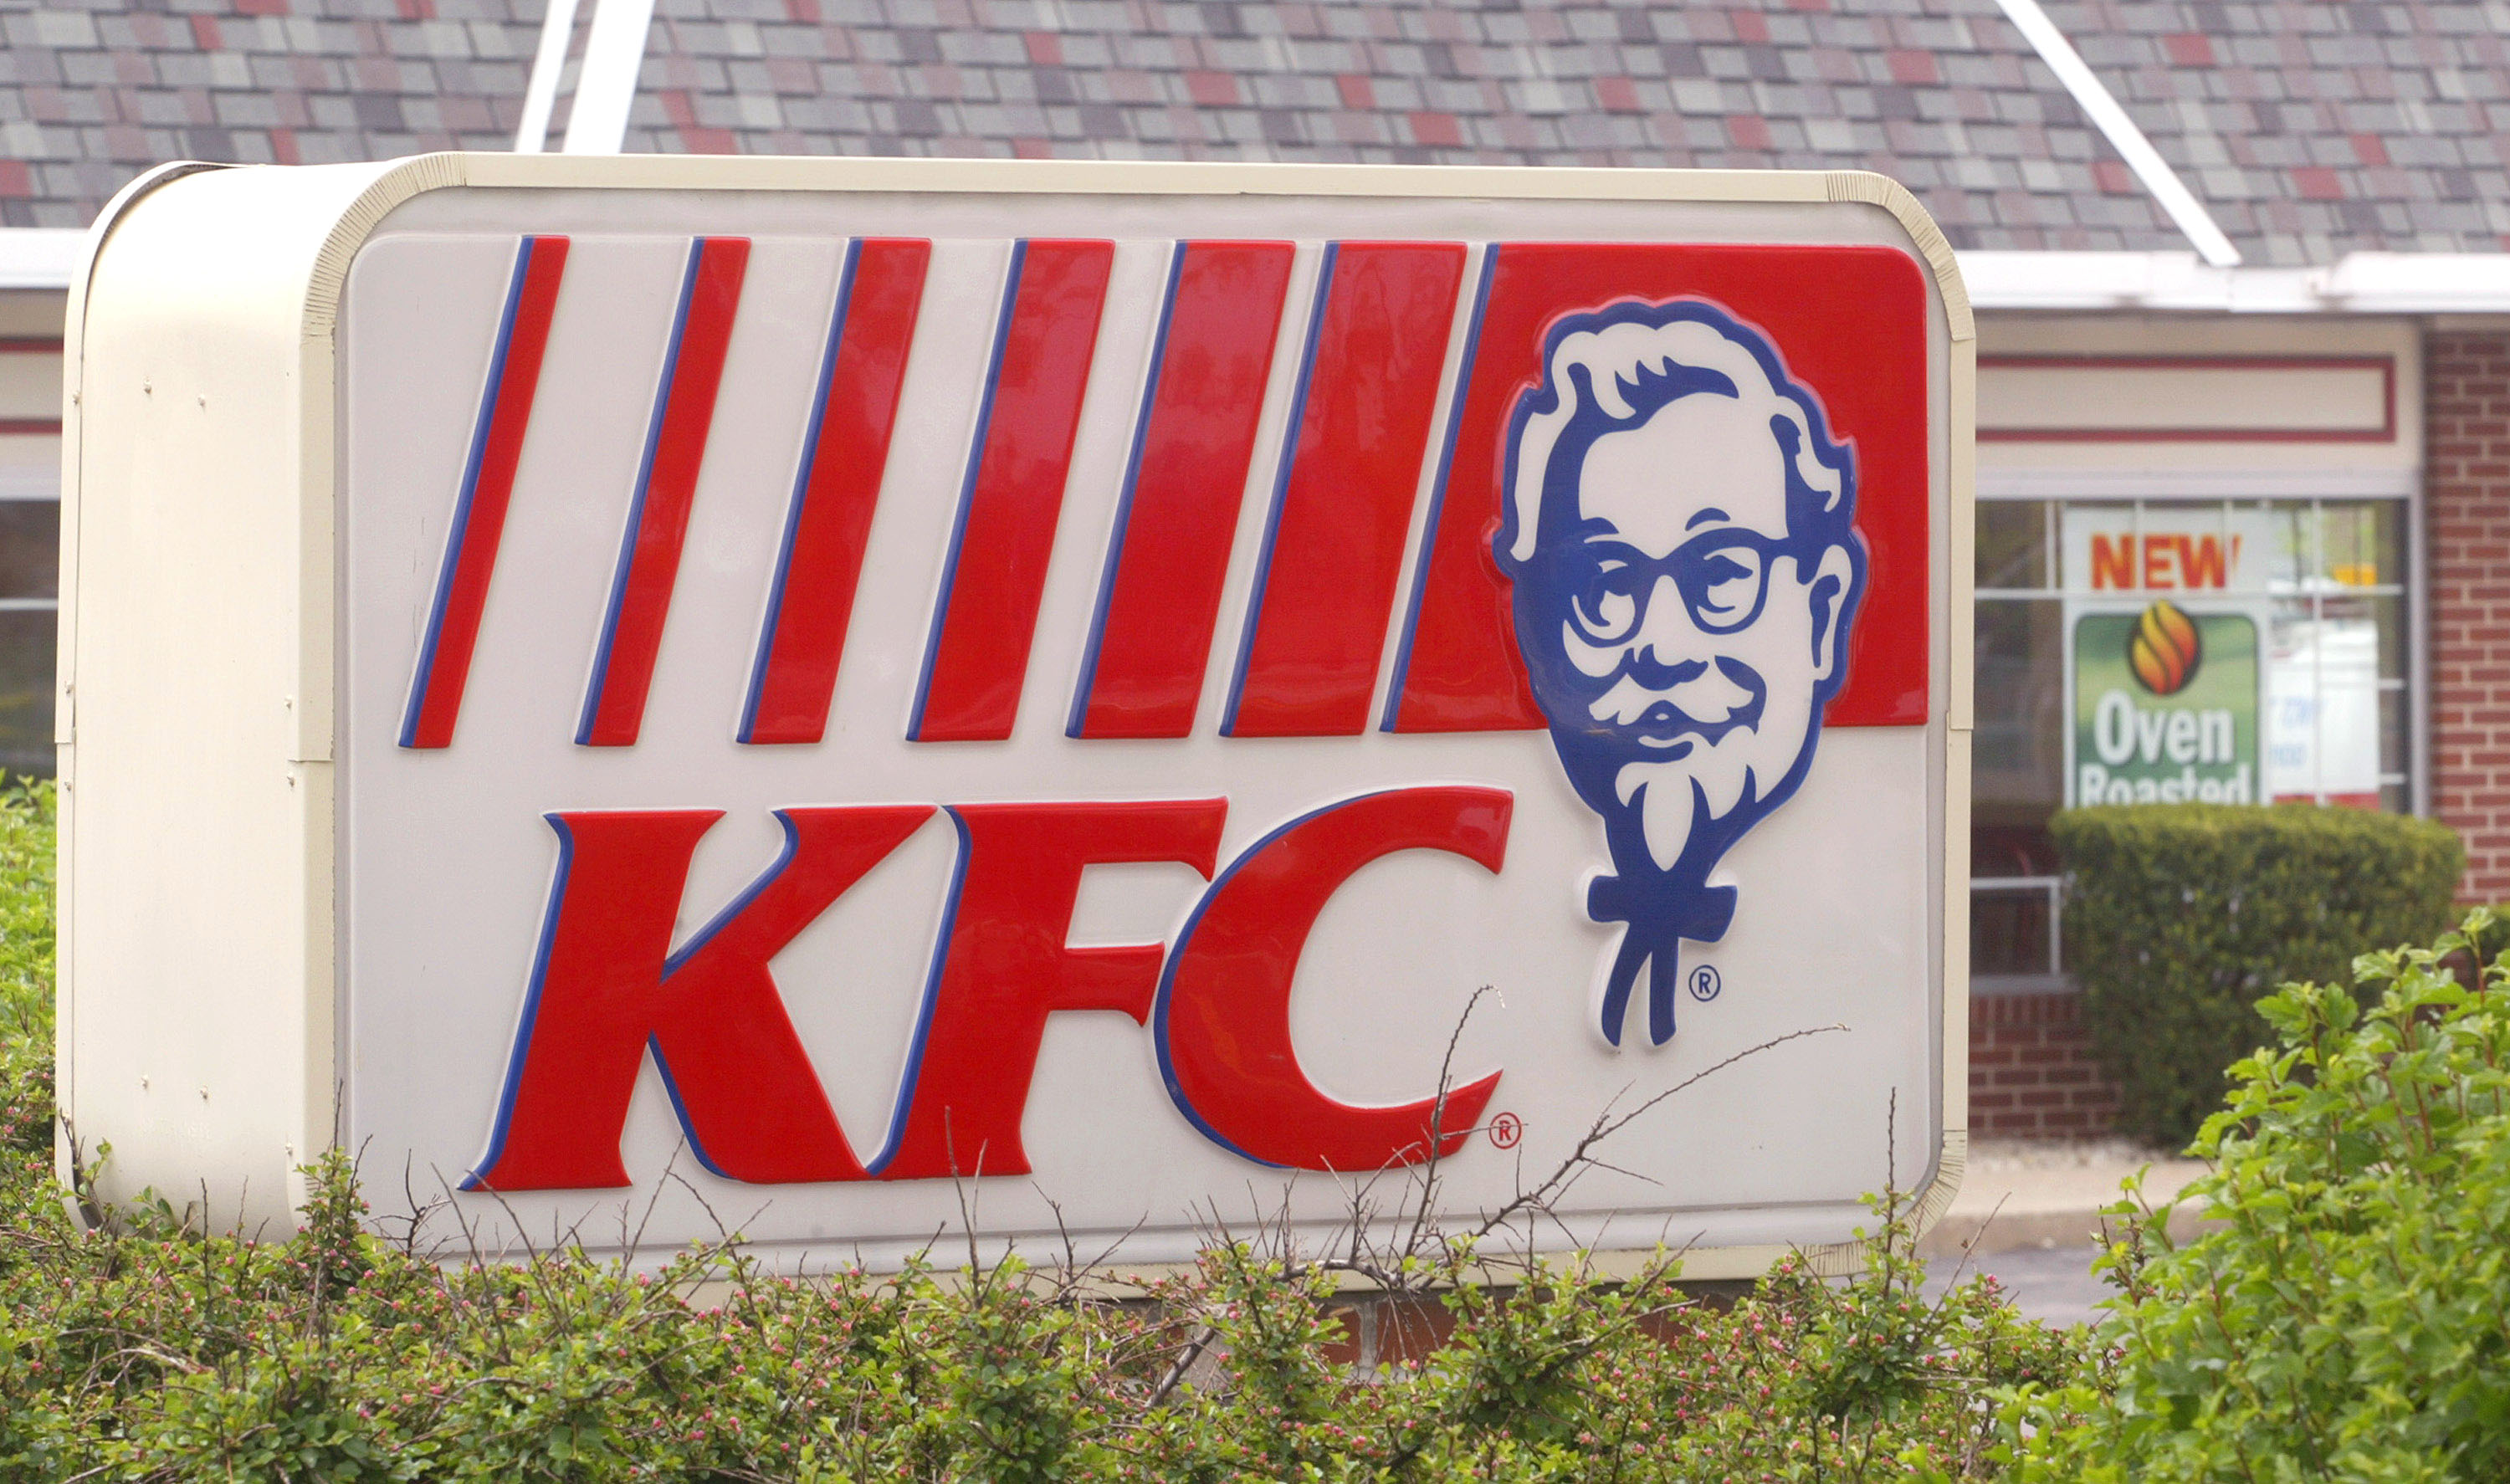 KFC stores in the UK are closed because they don't have any chicken.